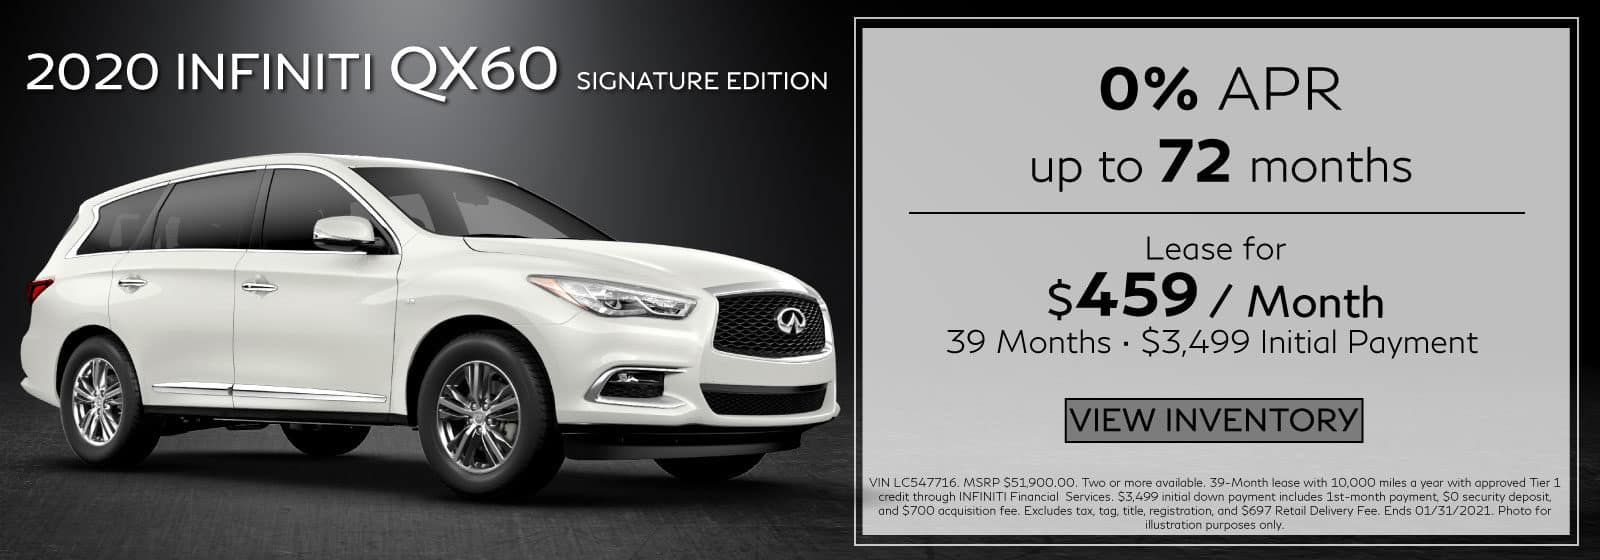 2020 QX60 Signature Edition. $459/mo for 39 months. $3,499 Initial Payment